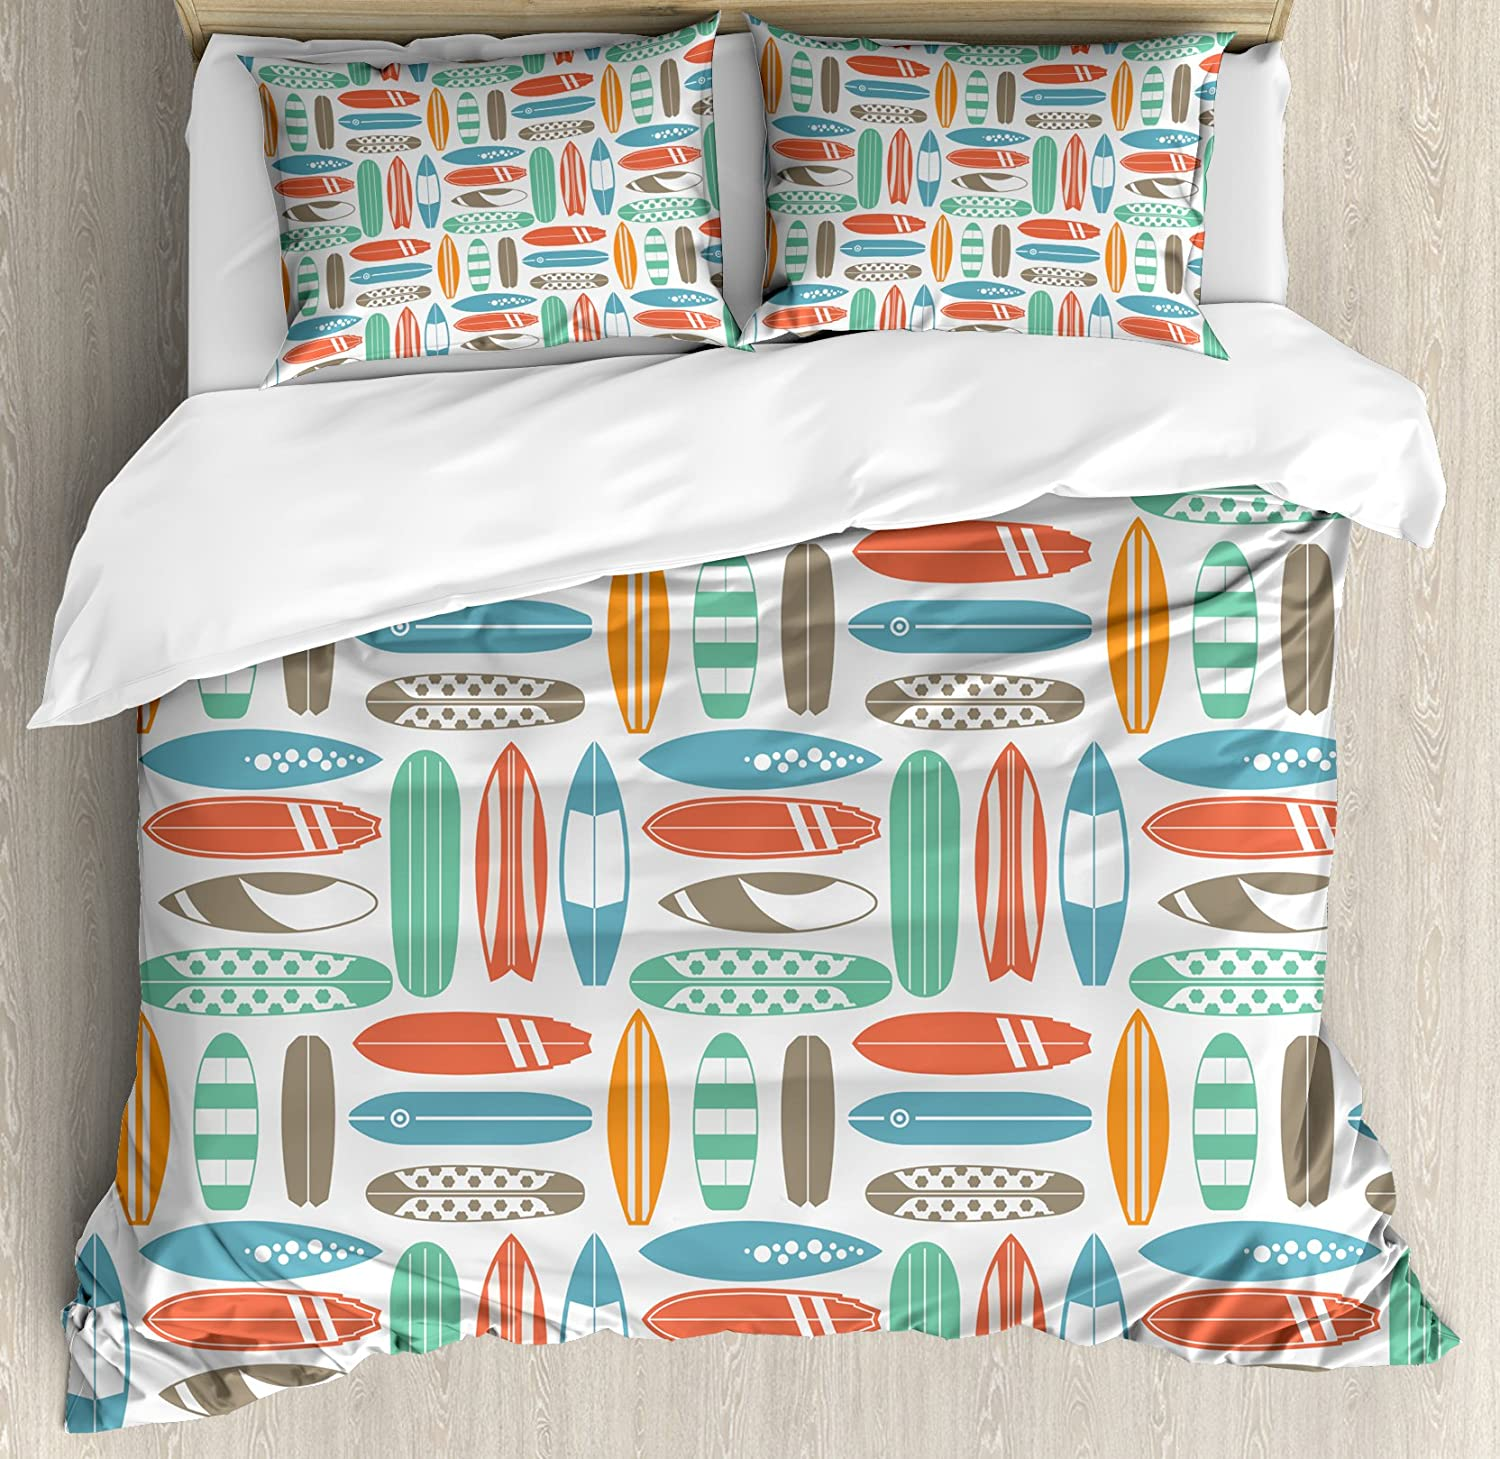 Ambesonne Surfboard Duvet Cover Set, Colorful Surfing Sea Pattern with Summer Travel Illustration in Retro Colors, Decorative 3 Piece Bedding Set with 2 Pillow Shams, Queen Size, Coral Orange